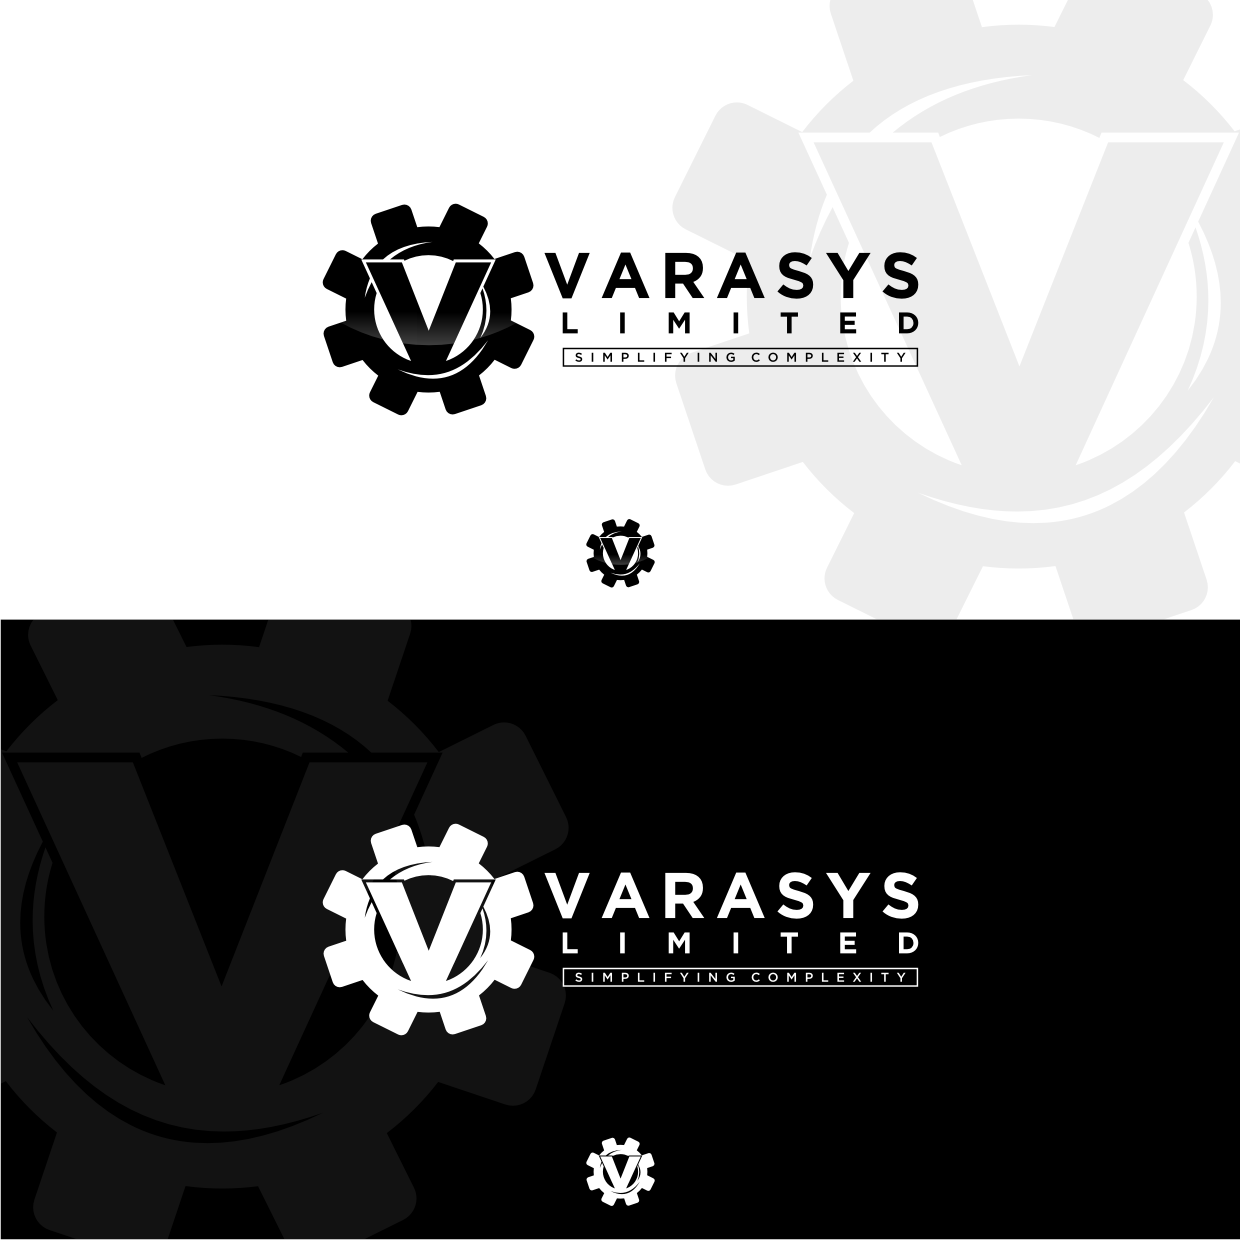 Logo Design by Analla Art - Entry No. 11 in the Logo Design Contest Artistic Logo Design for VARASYS Limited.